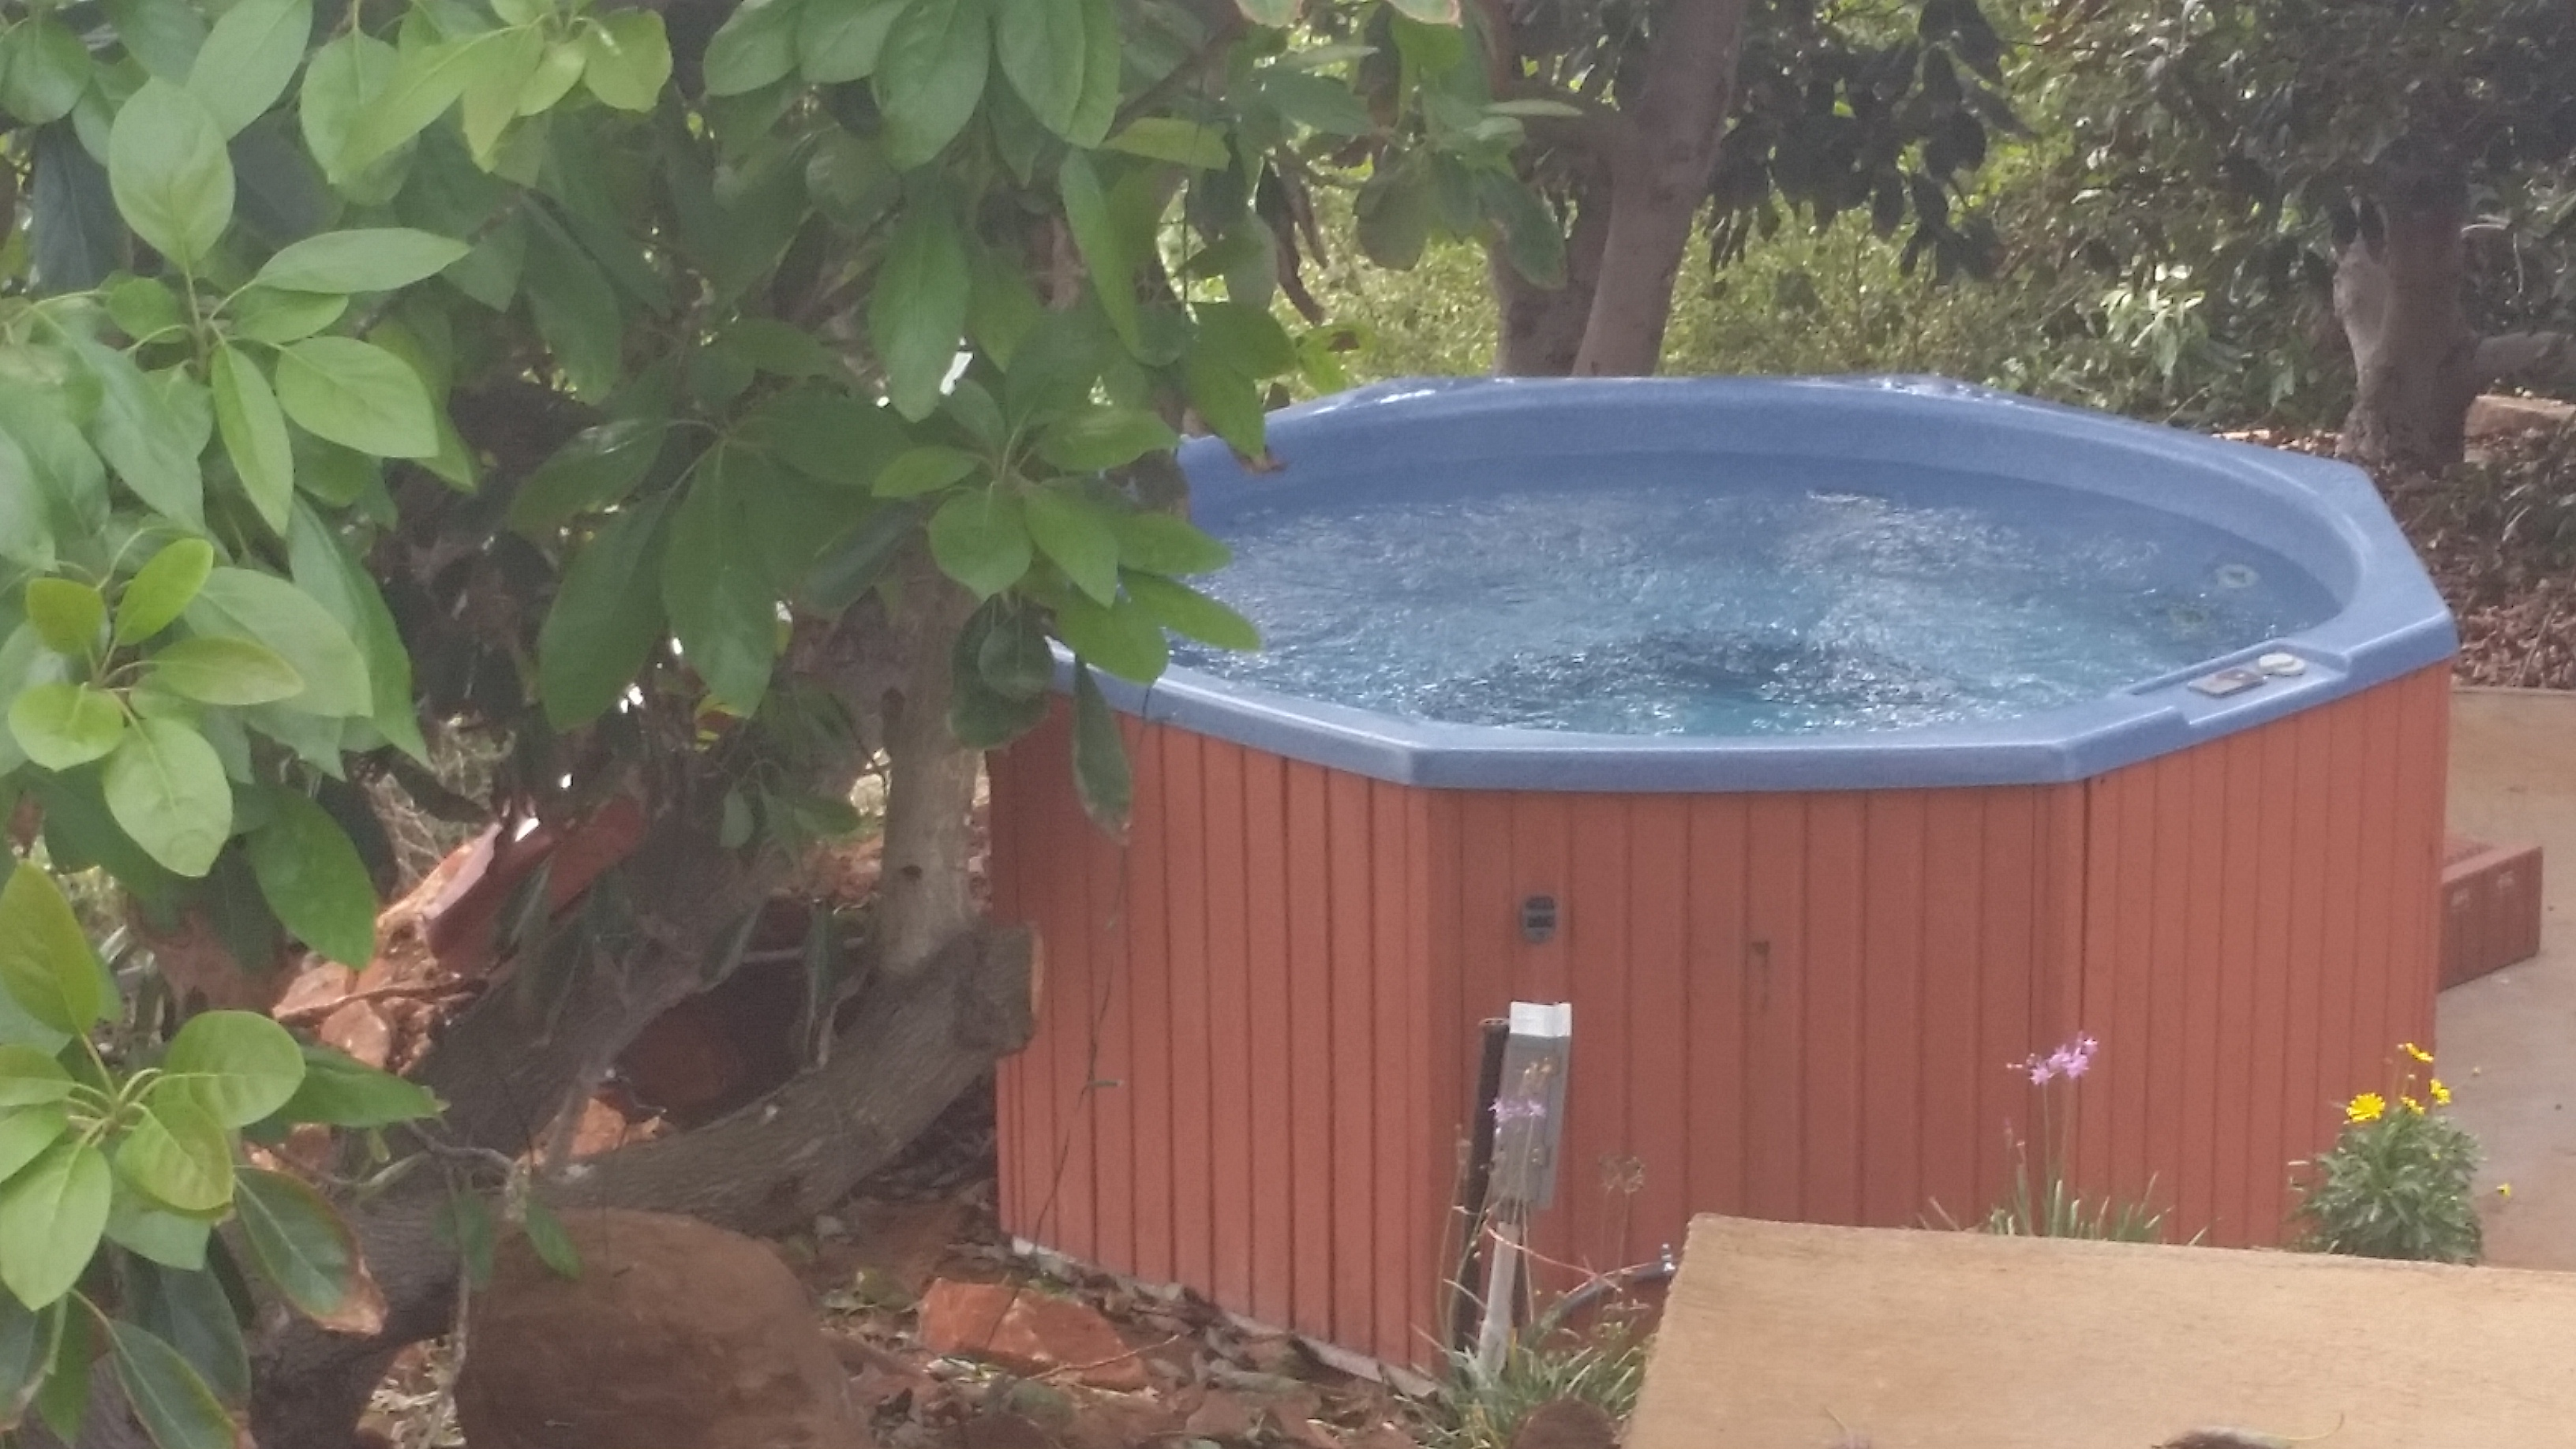 Hottub hidden in the grove of the Two Bedroom Bungalow with Hottub.